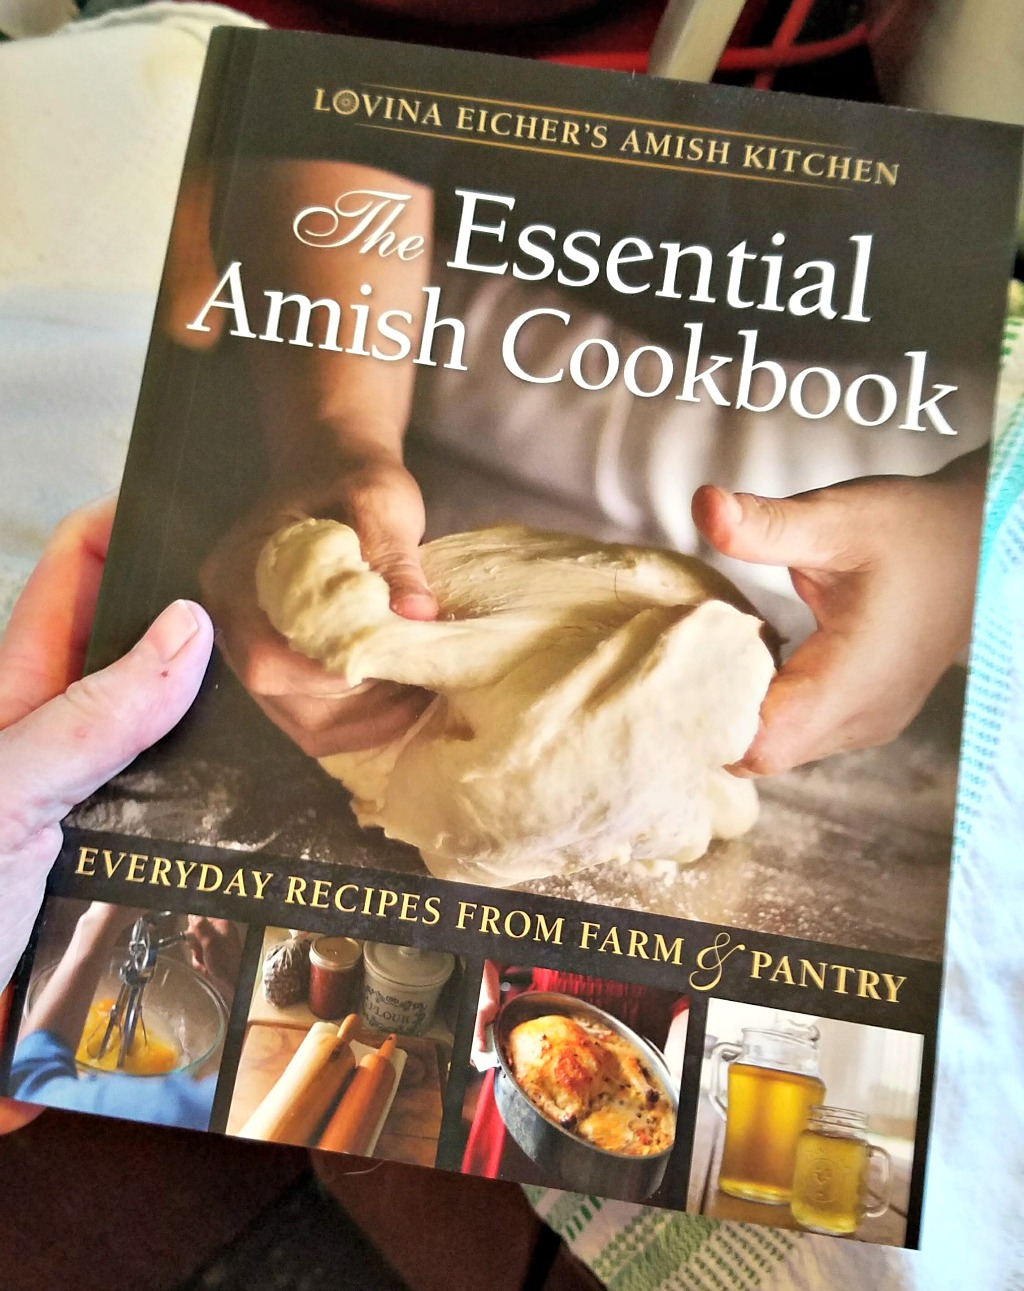 The Essential Amish Cookbook, AD